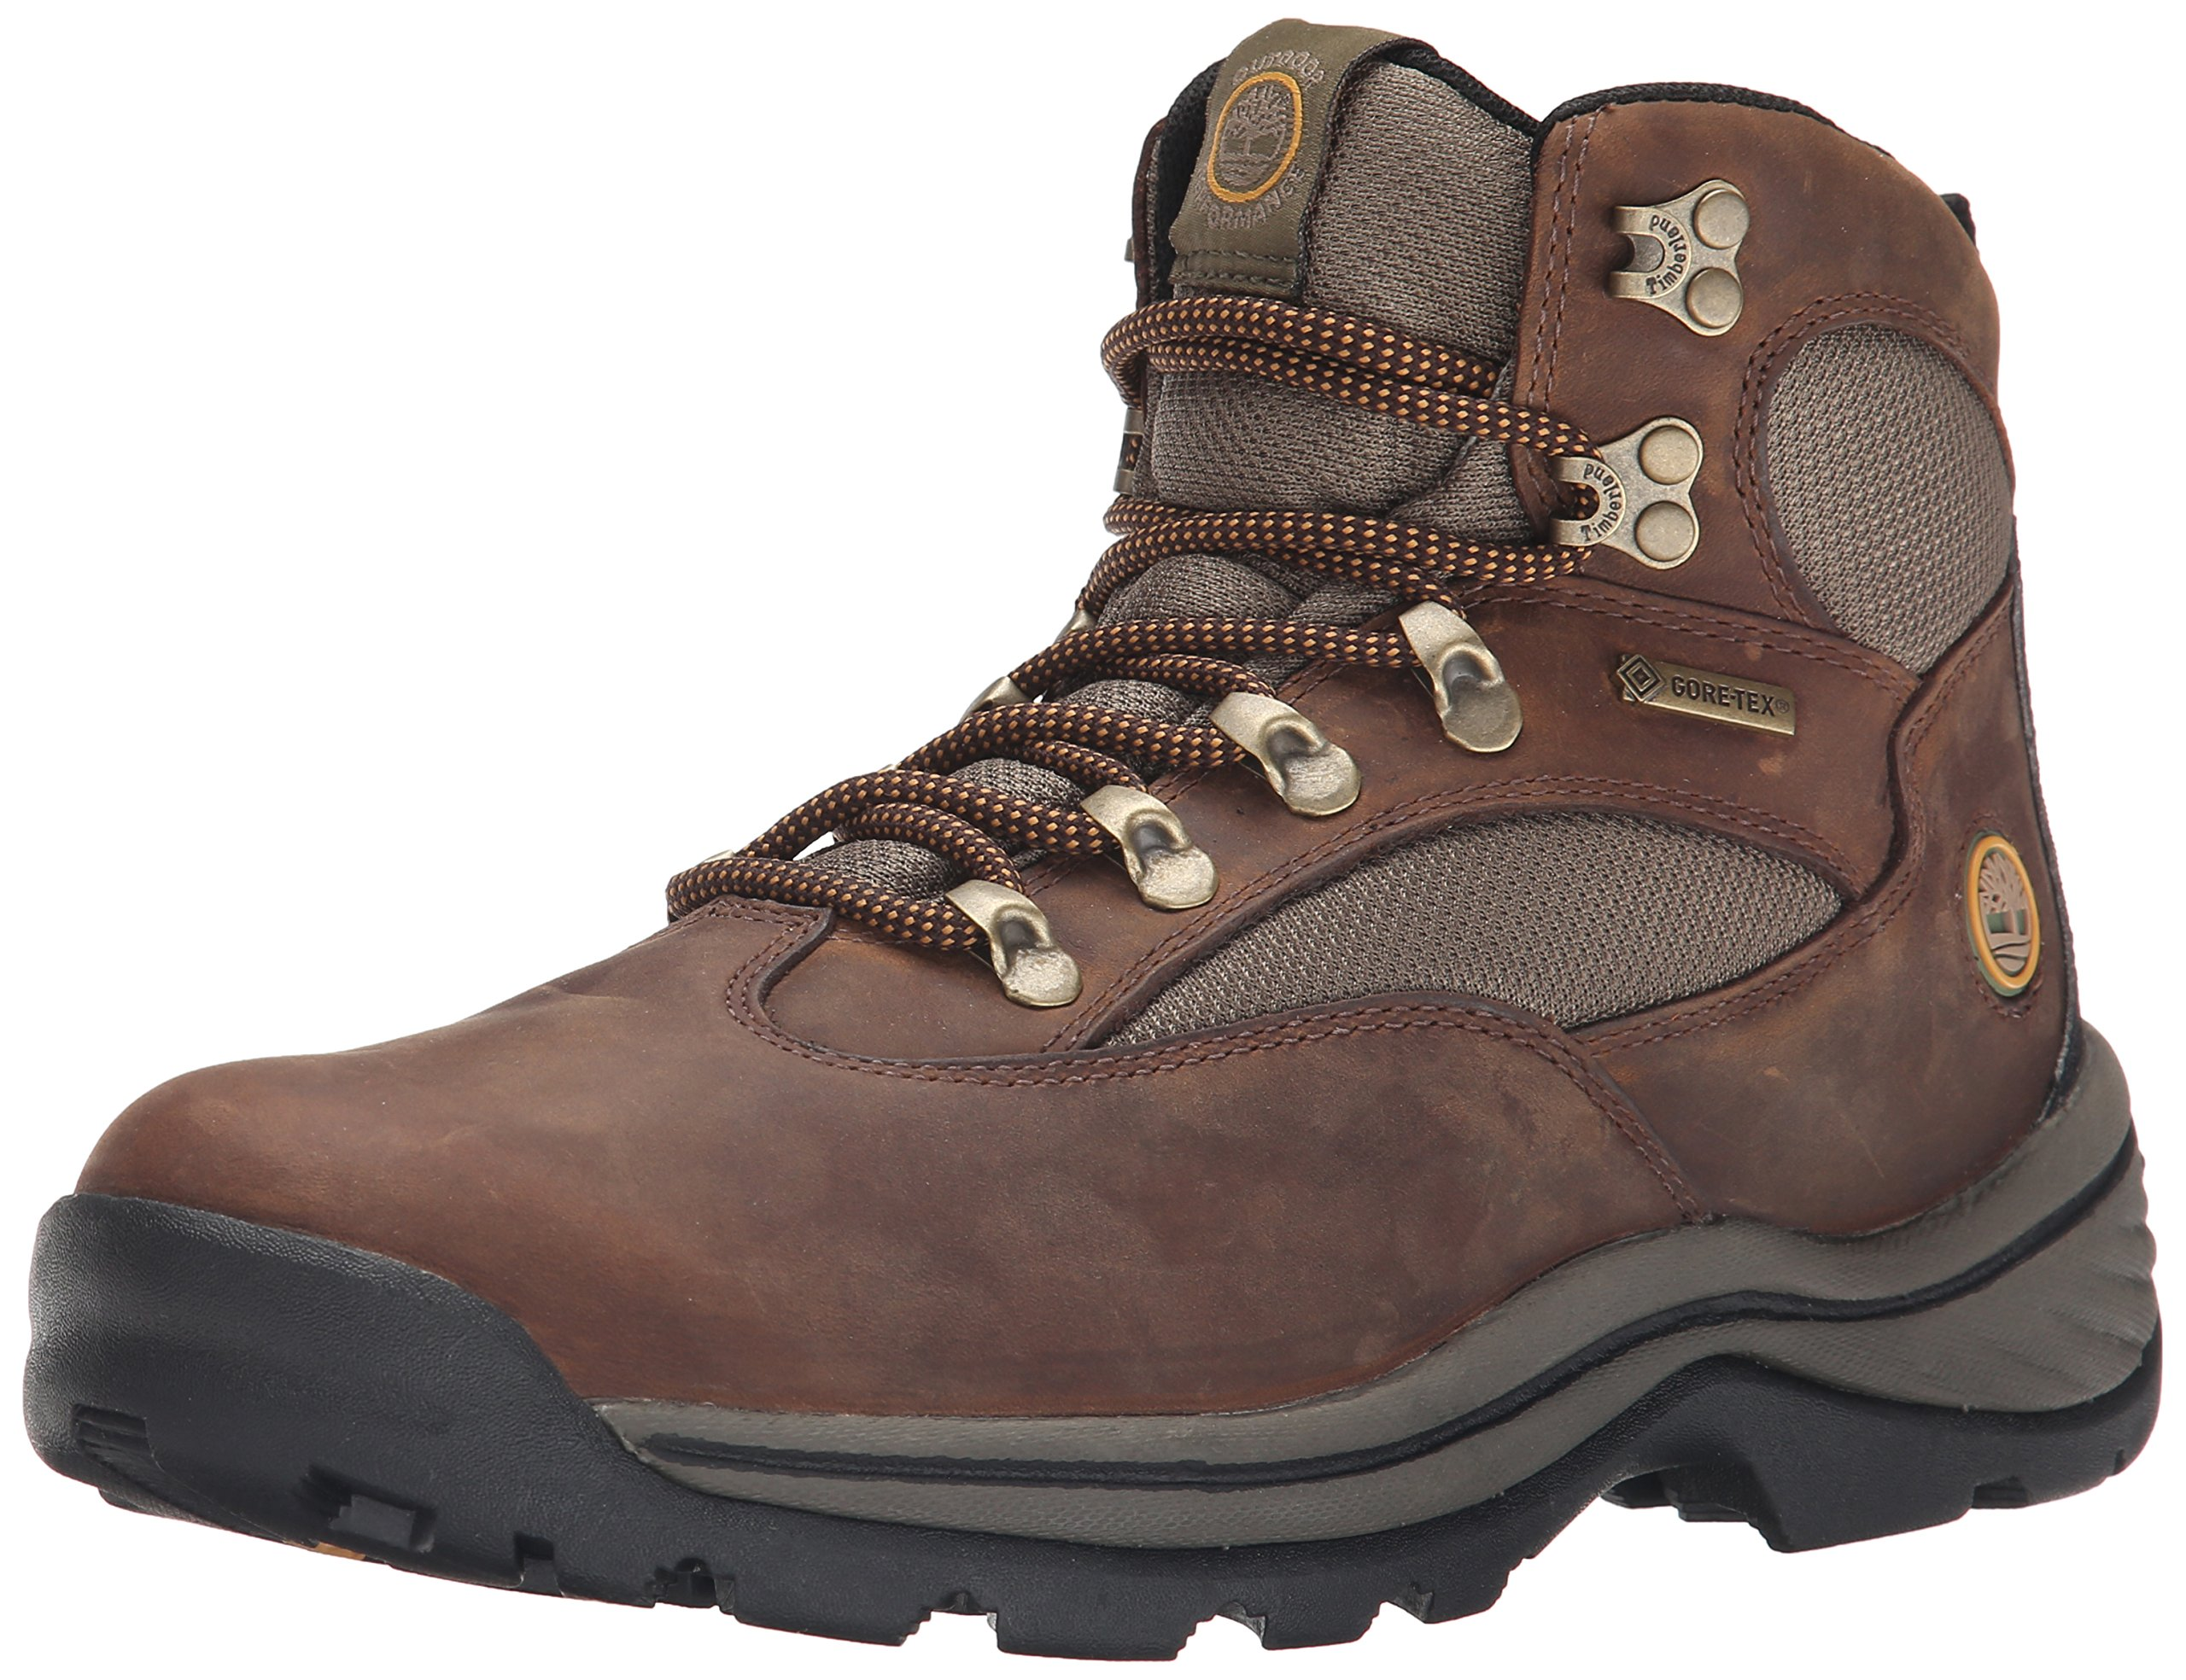 Timberland Chocorua Trail Mid GTX Women's Hiking Boots, UK 7 Brown